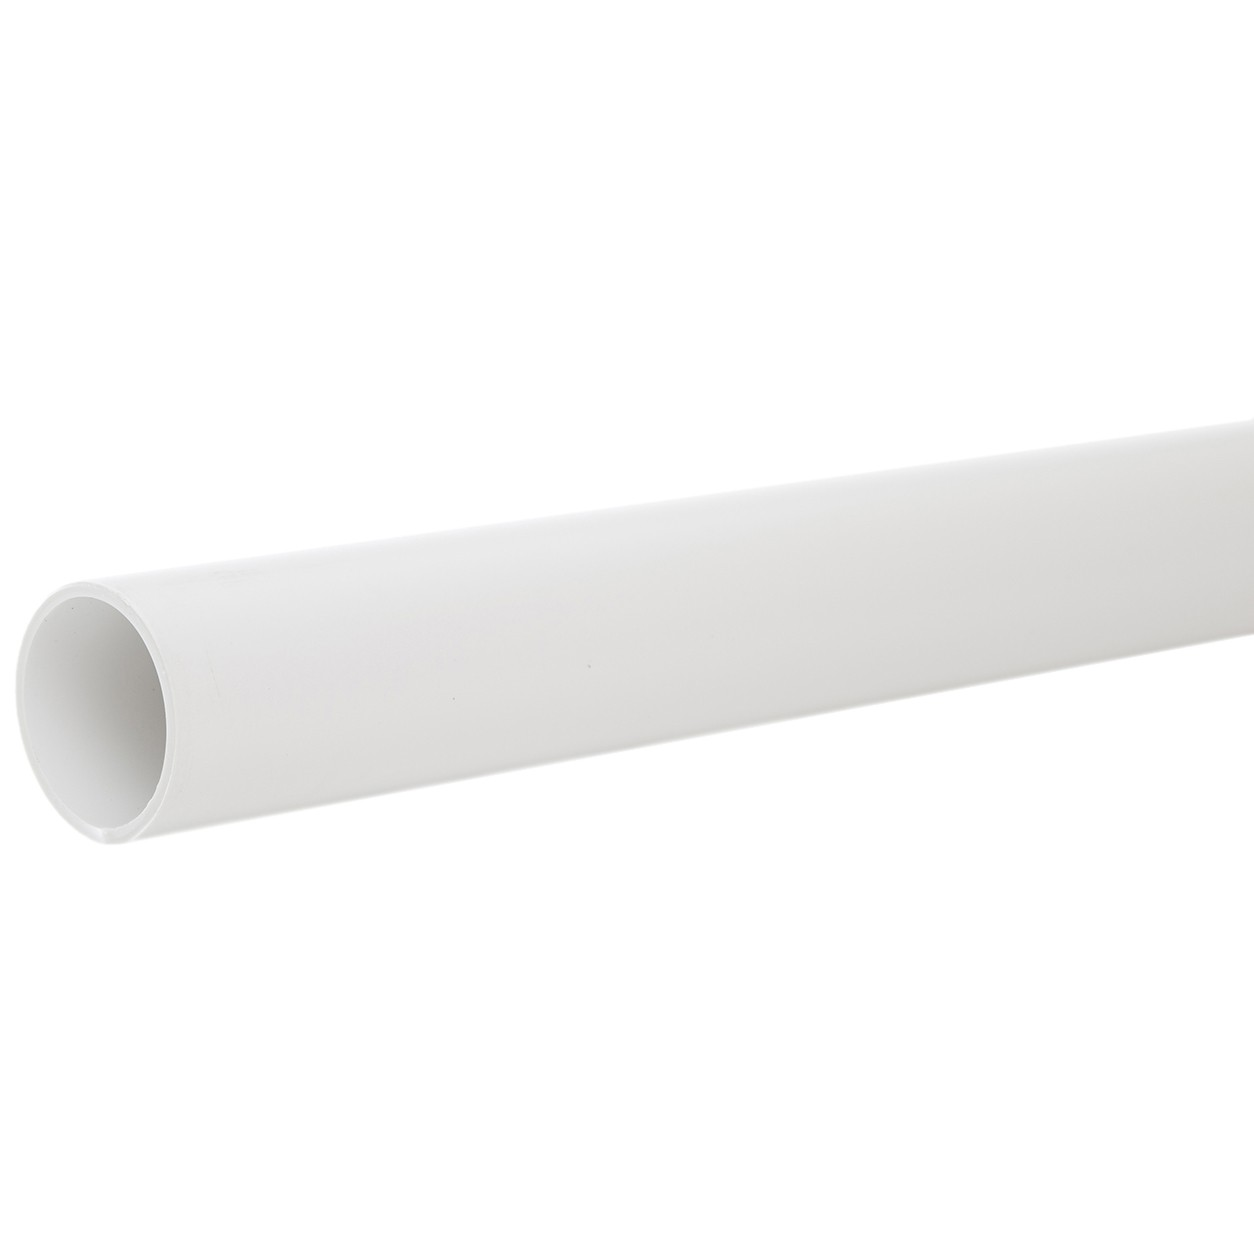 Polypipe 40mm Solvent Weld Waste Pipe - White, 1.5 metre